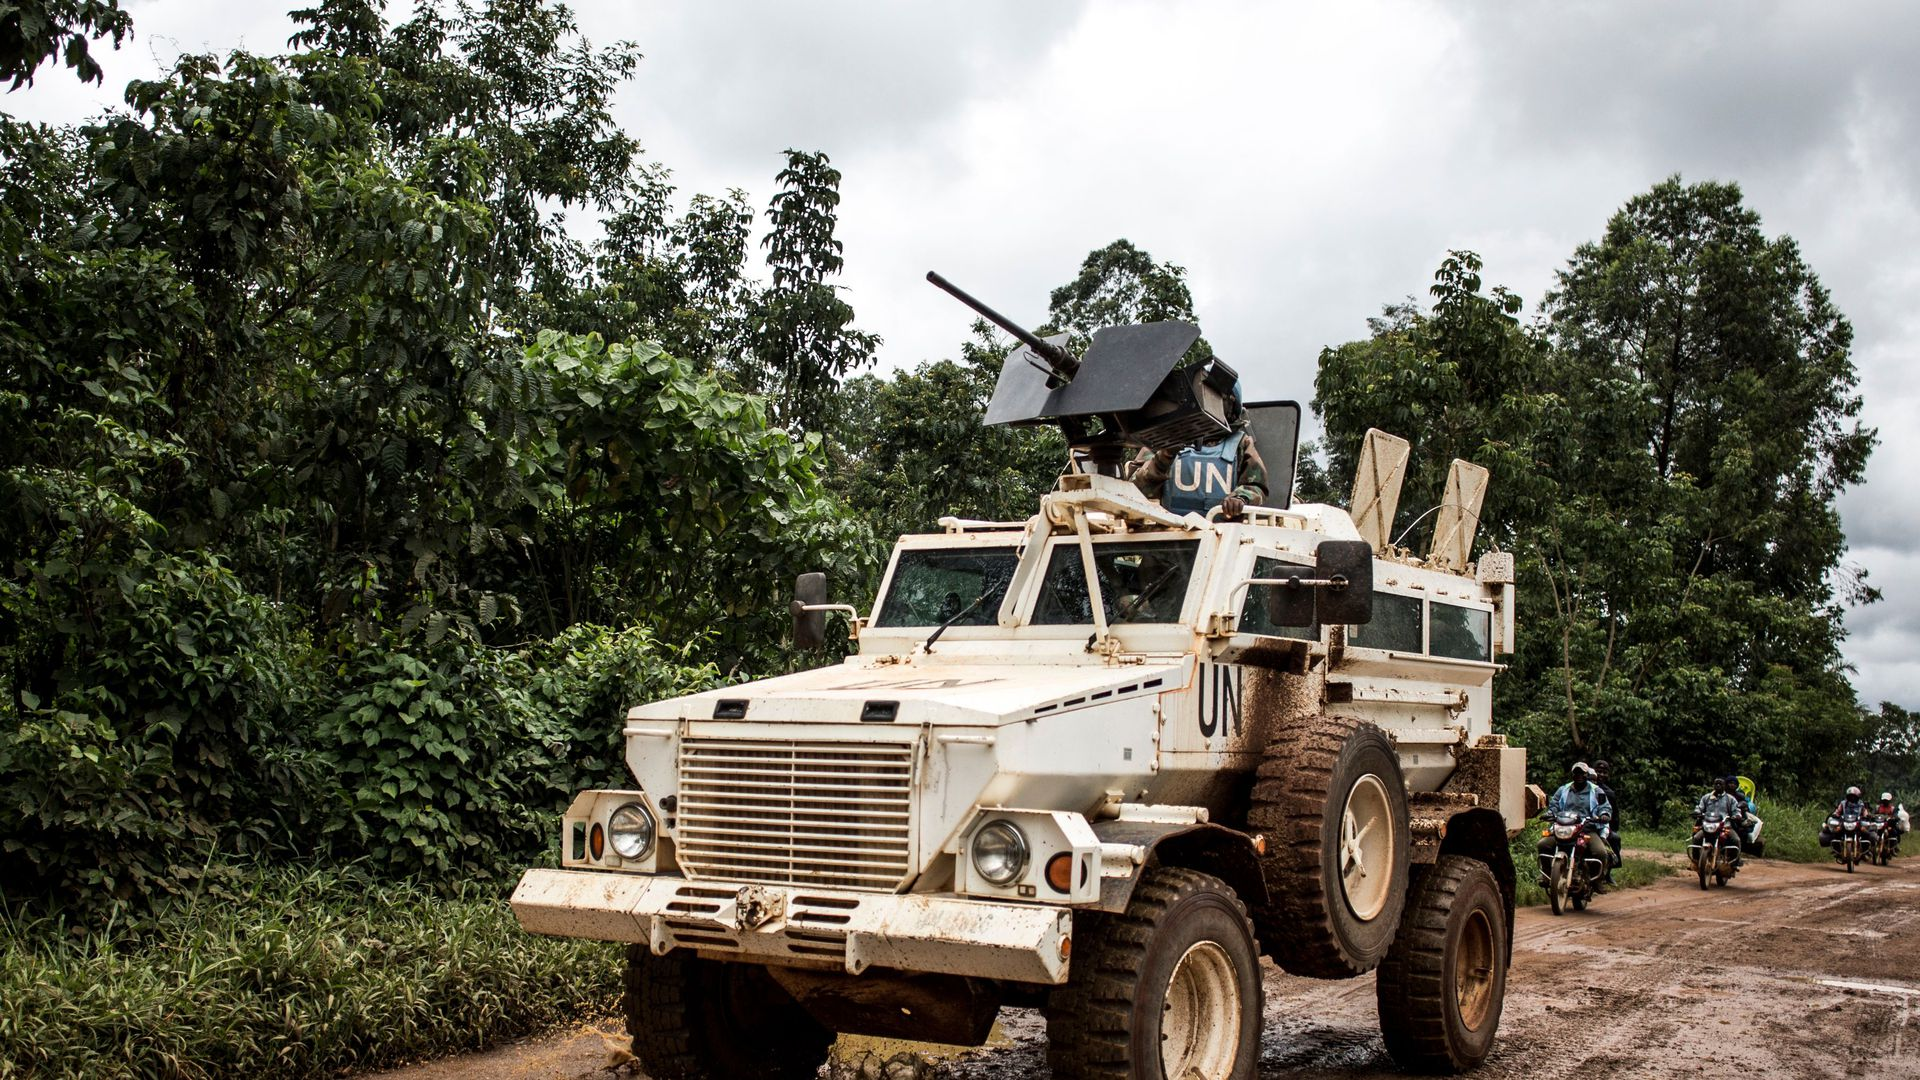 Photo of MONUSCO tank patrolling city of Beni, the epicenter of Ebola outbreak in Congo